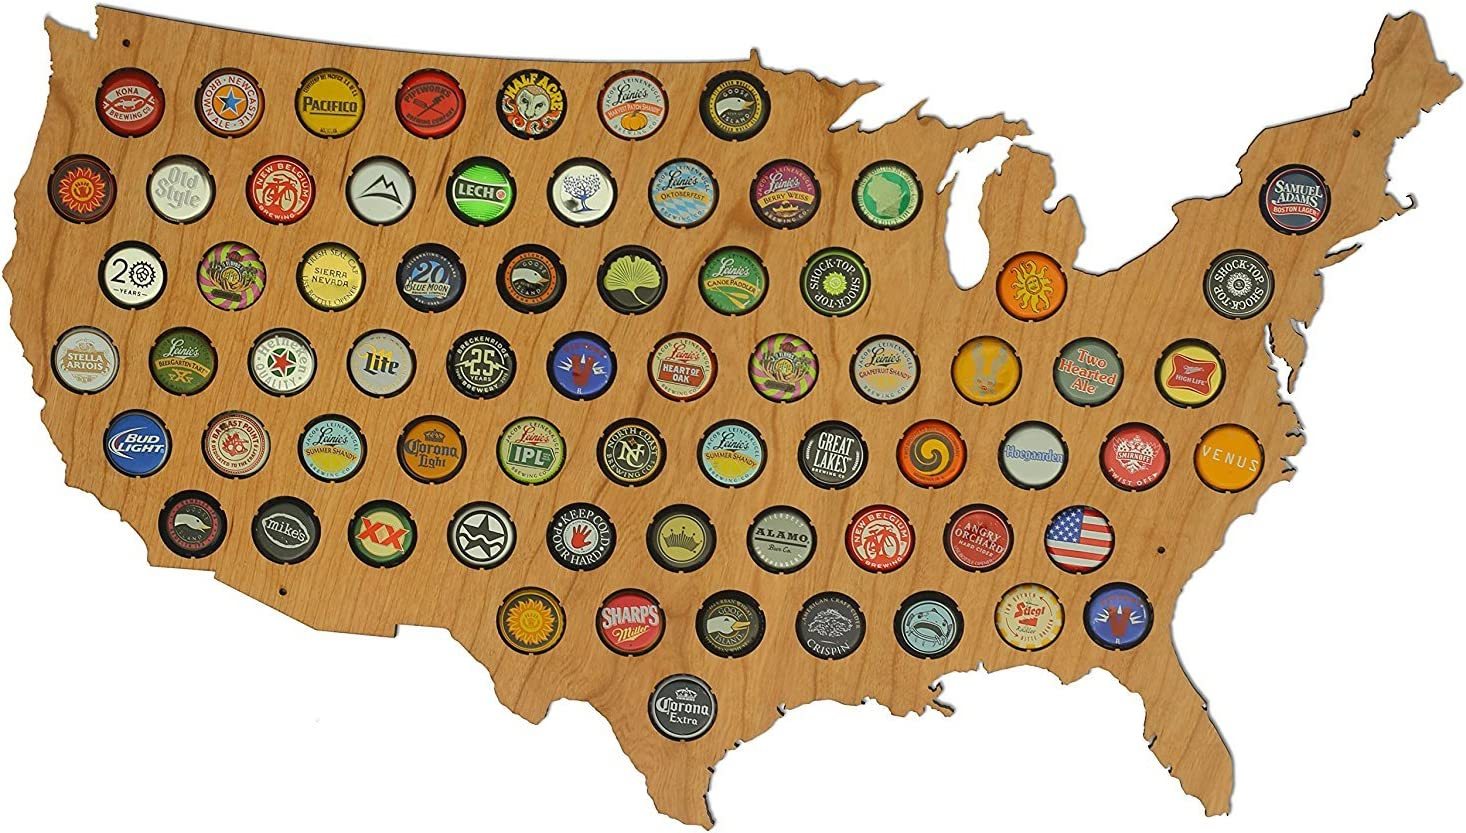 USA Beer Cap Map Cherry - Glossy Wood Bottle Cap Holder - Skyline Workshop - Made in the USA! - Great Christmas gift!